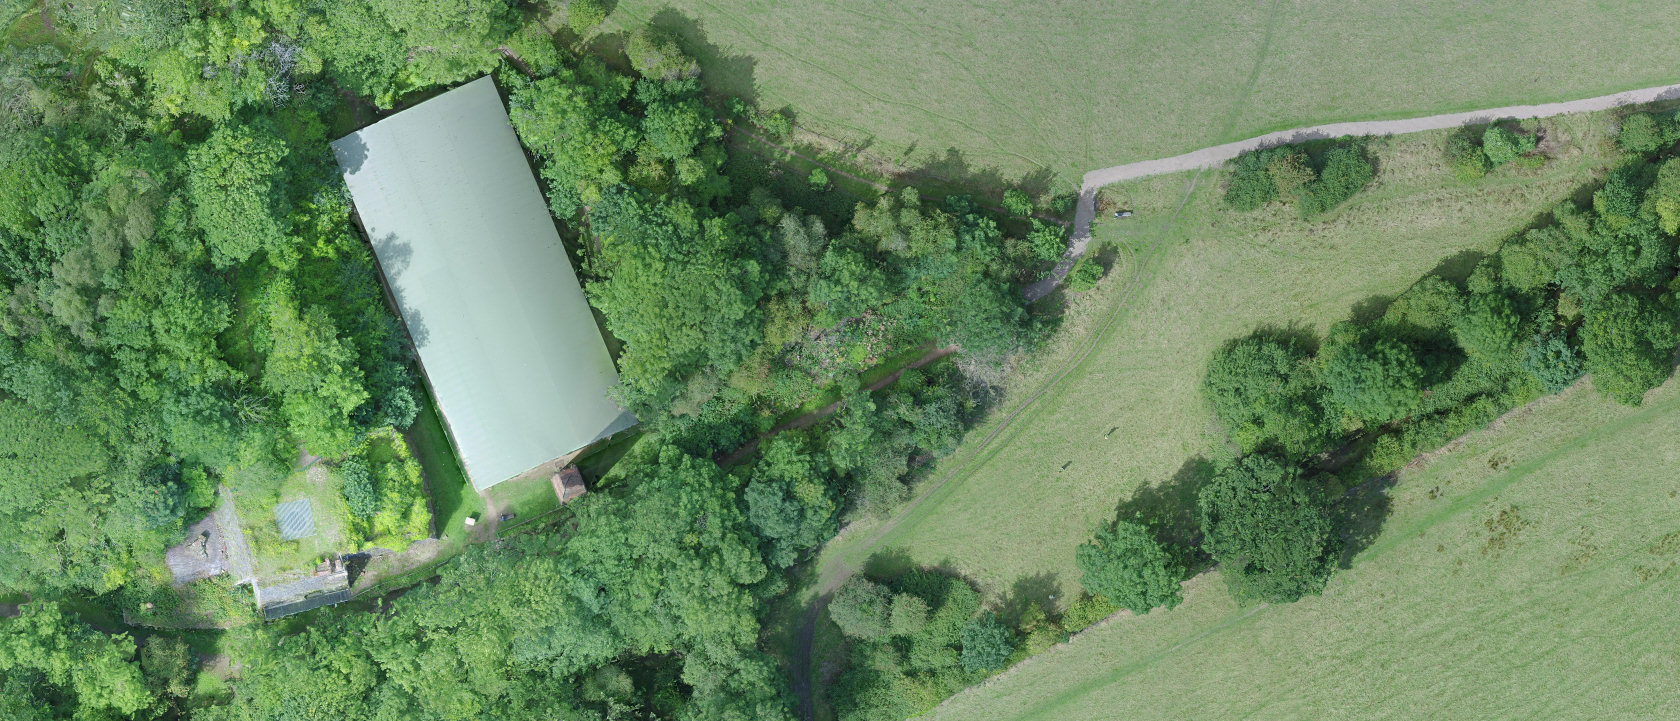 Permalink to:Drone Mapping and Aerial Surveys